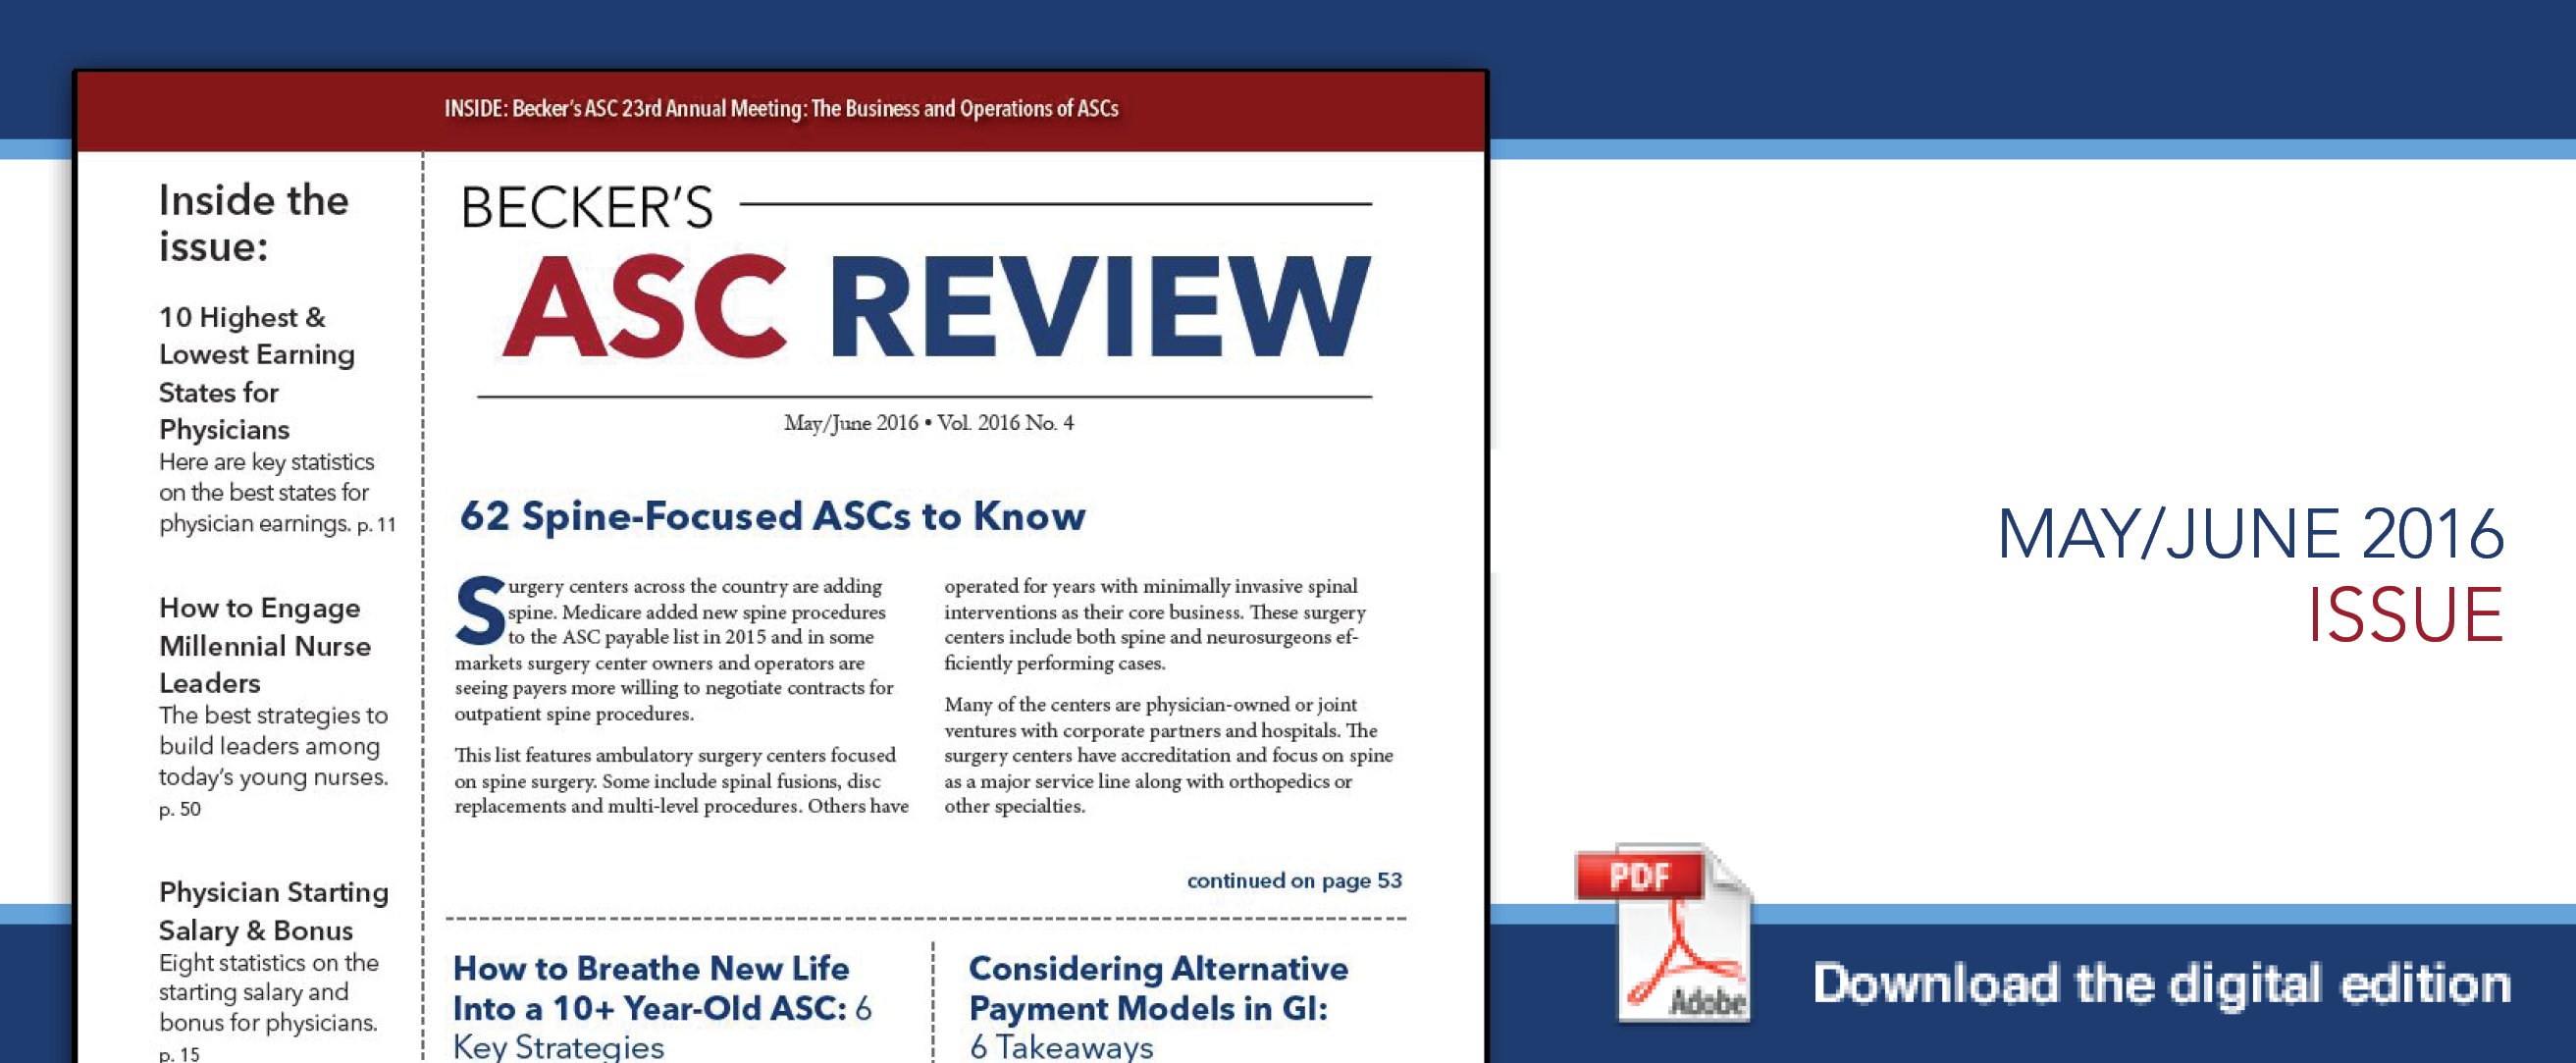 may-june-asc-cover-image